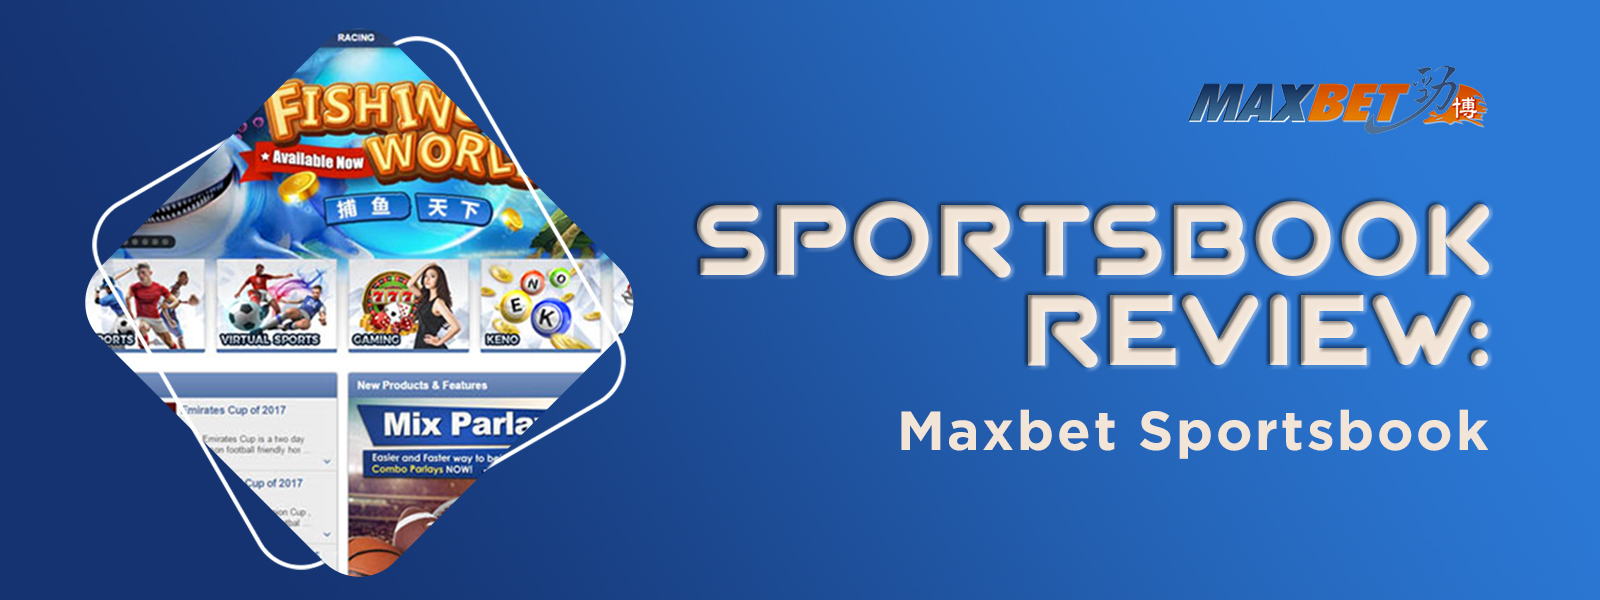 Sportsbook Review: Maxbet Sportsbook